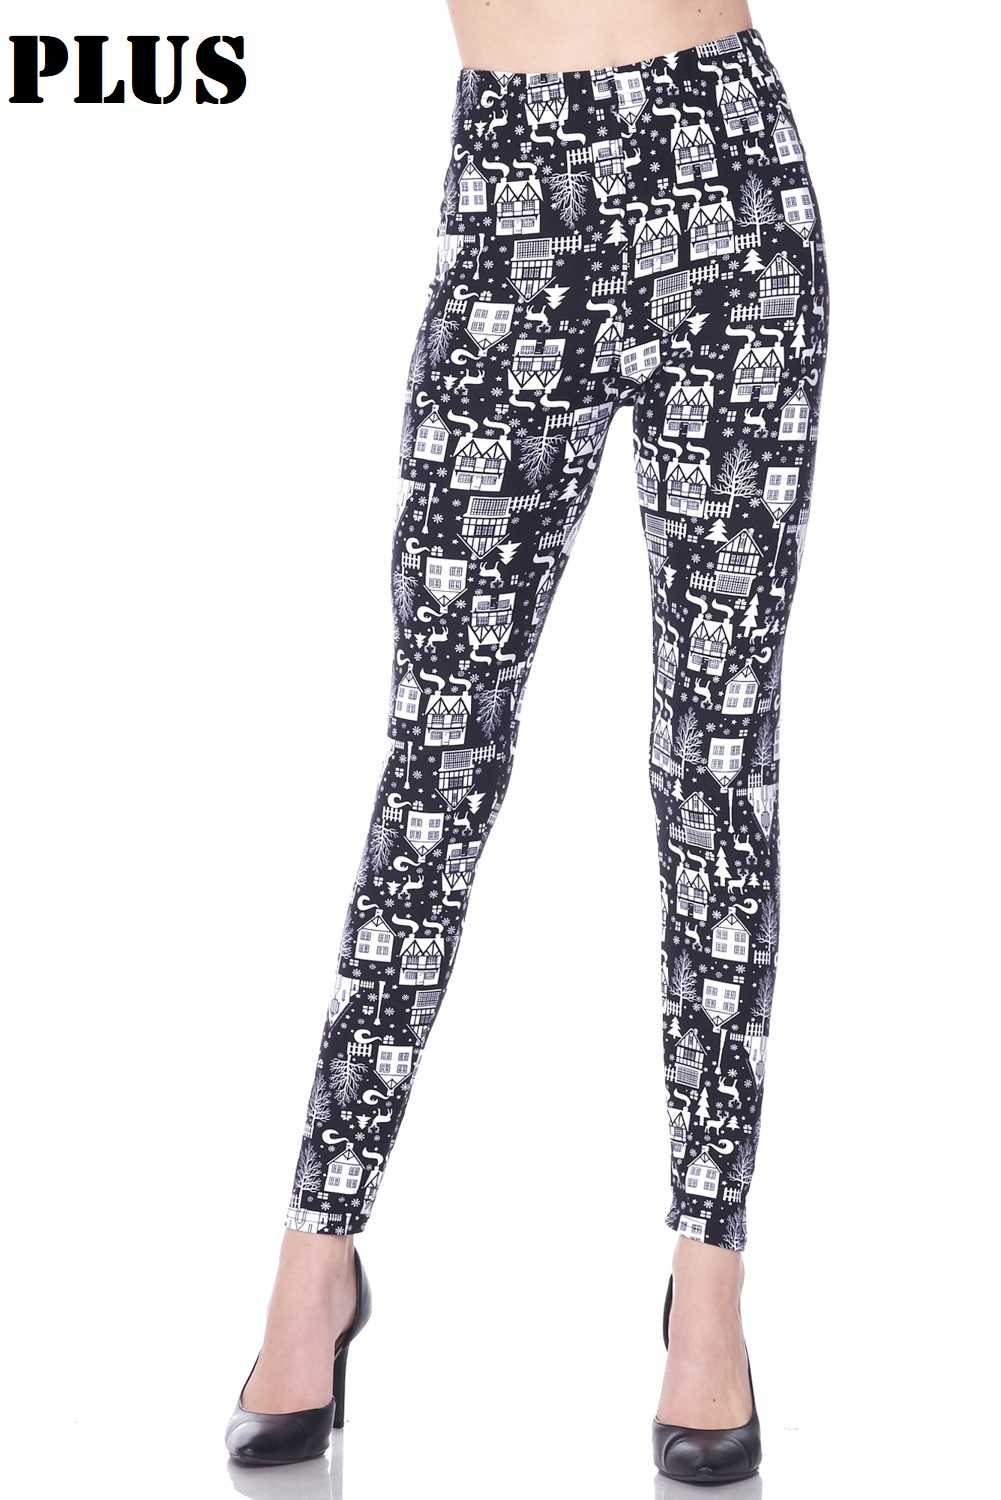 PLUS Santa Is Coming Tonight Print Leggings